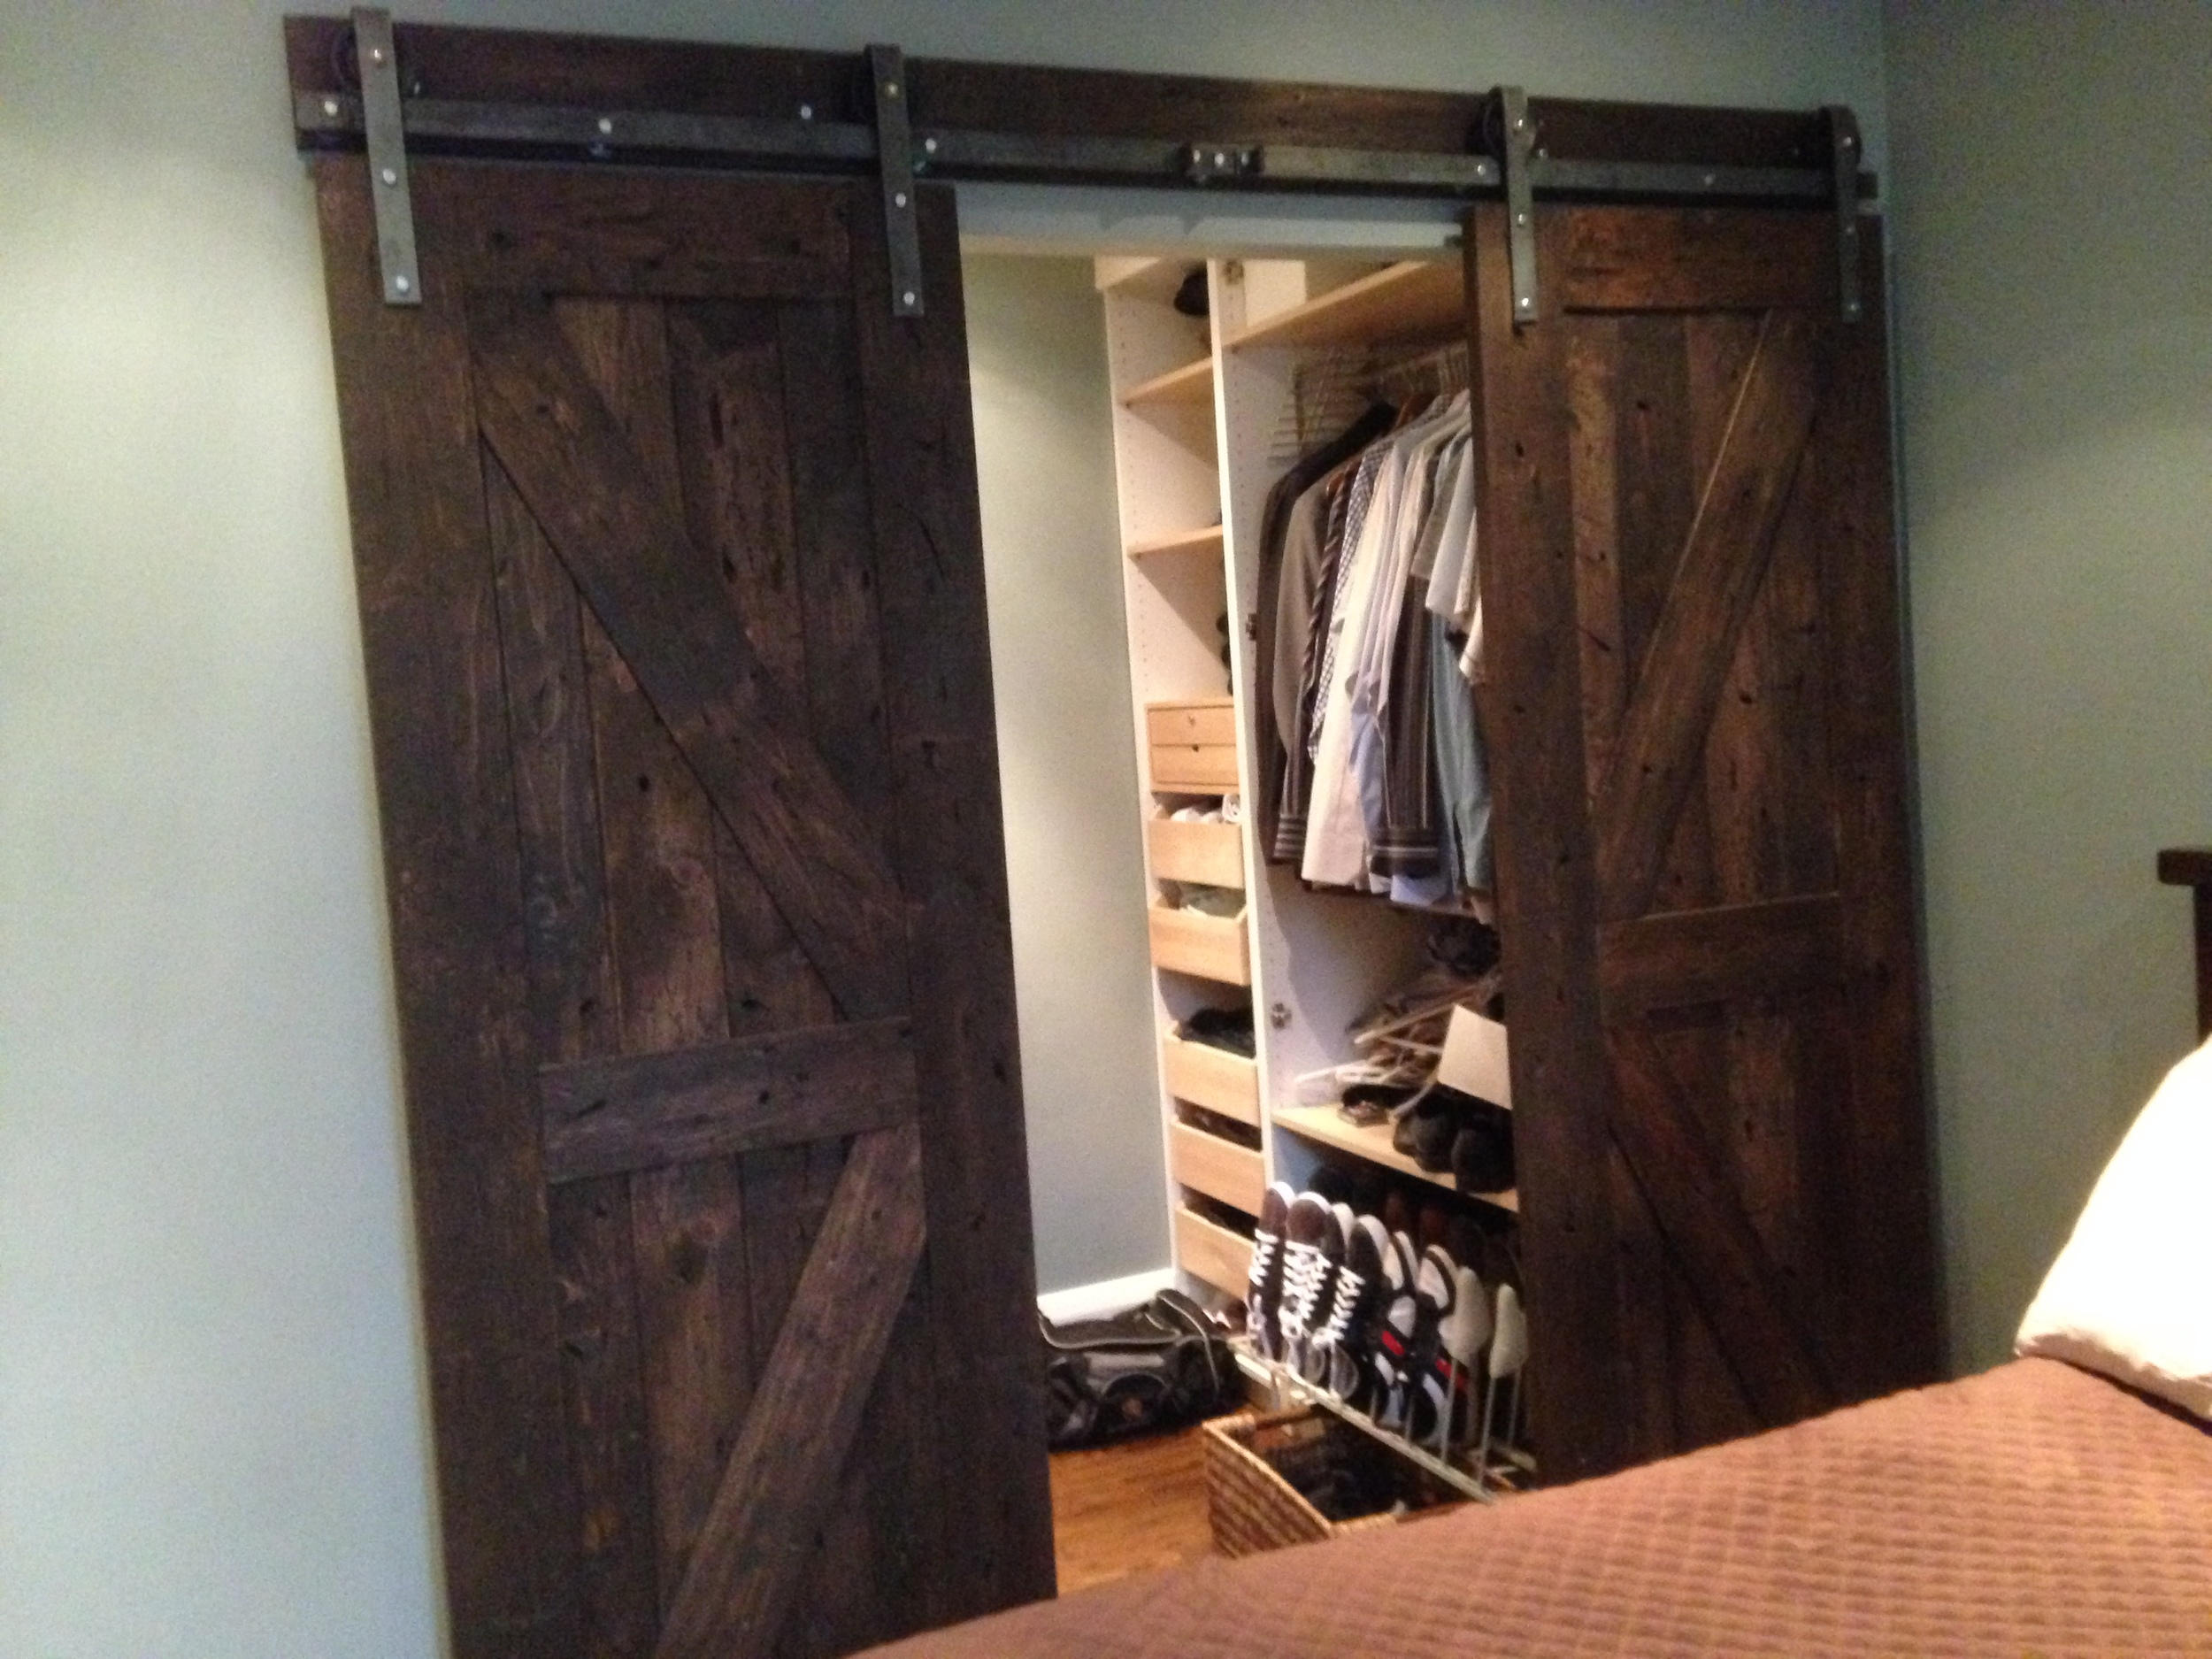 The door is also hand distress to give a more rustic look.  Now I'm envious of the walk-in closet, wow, so neat, and spacious...something rare for any closets.